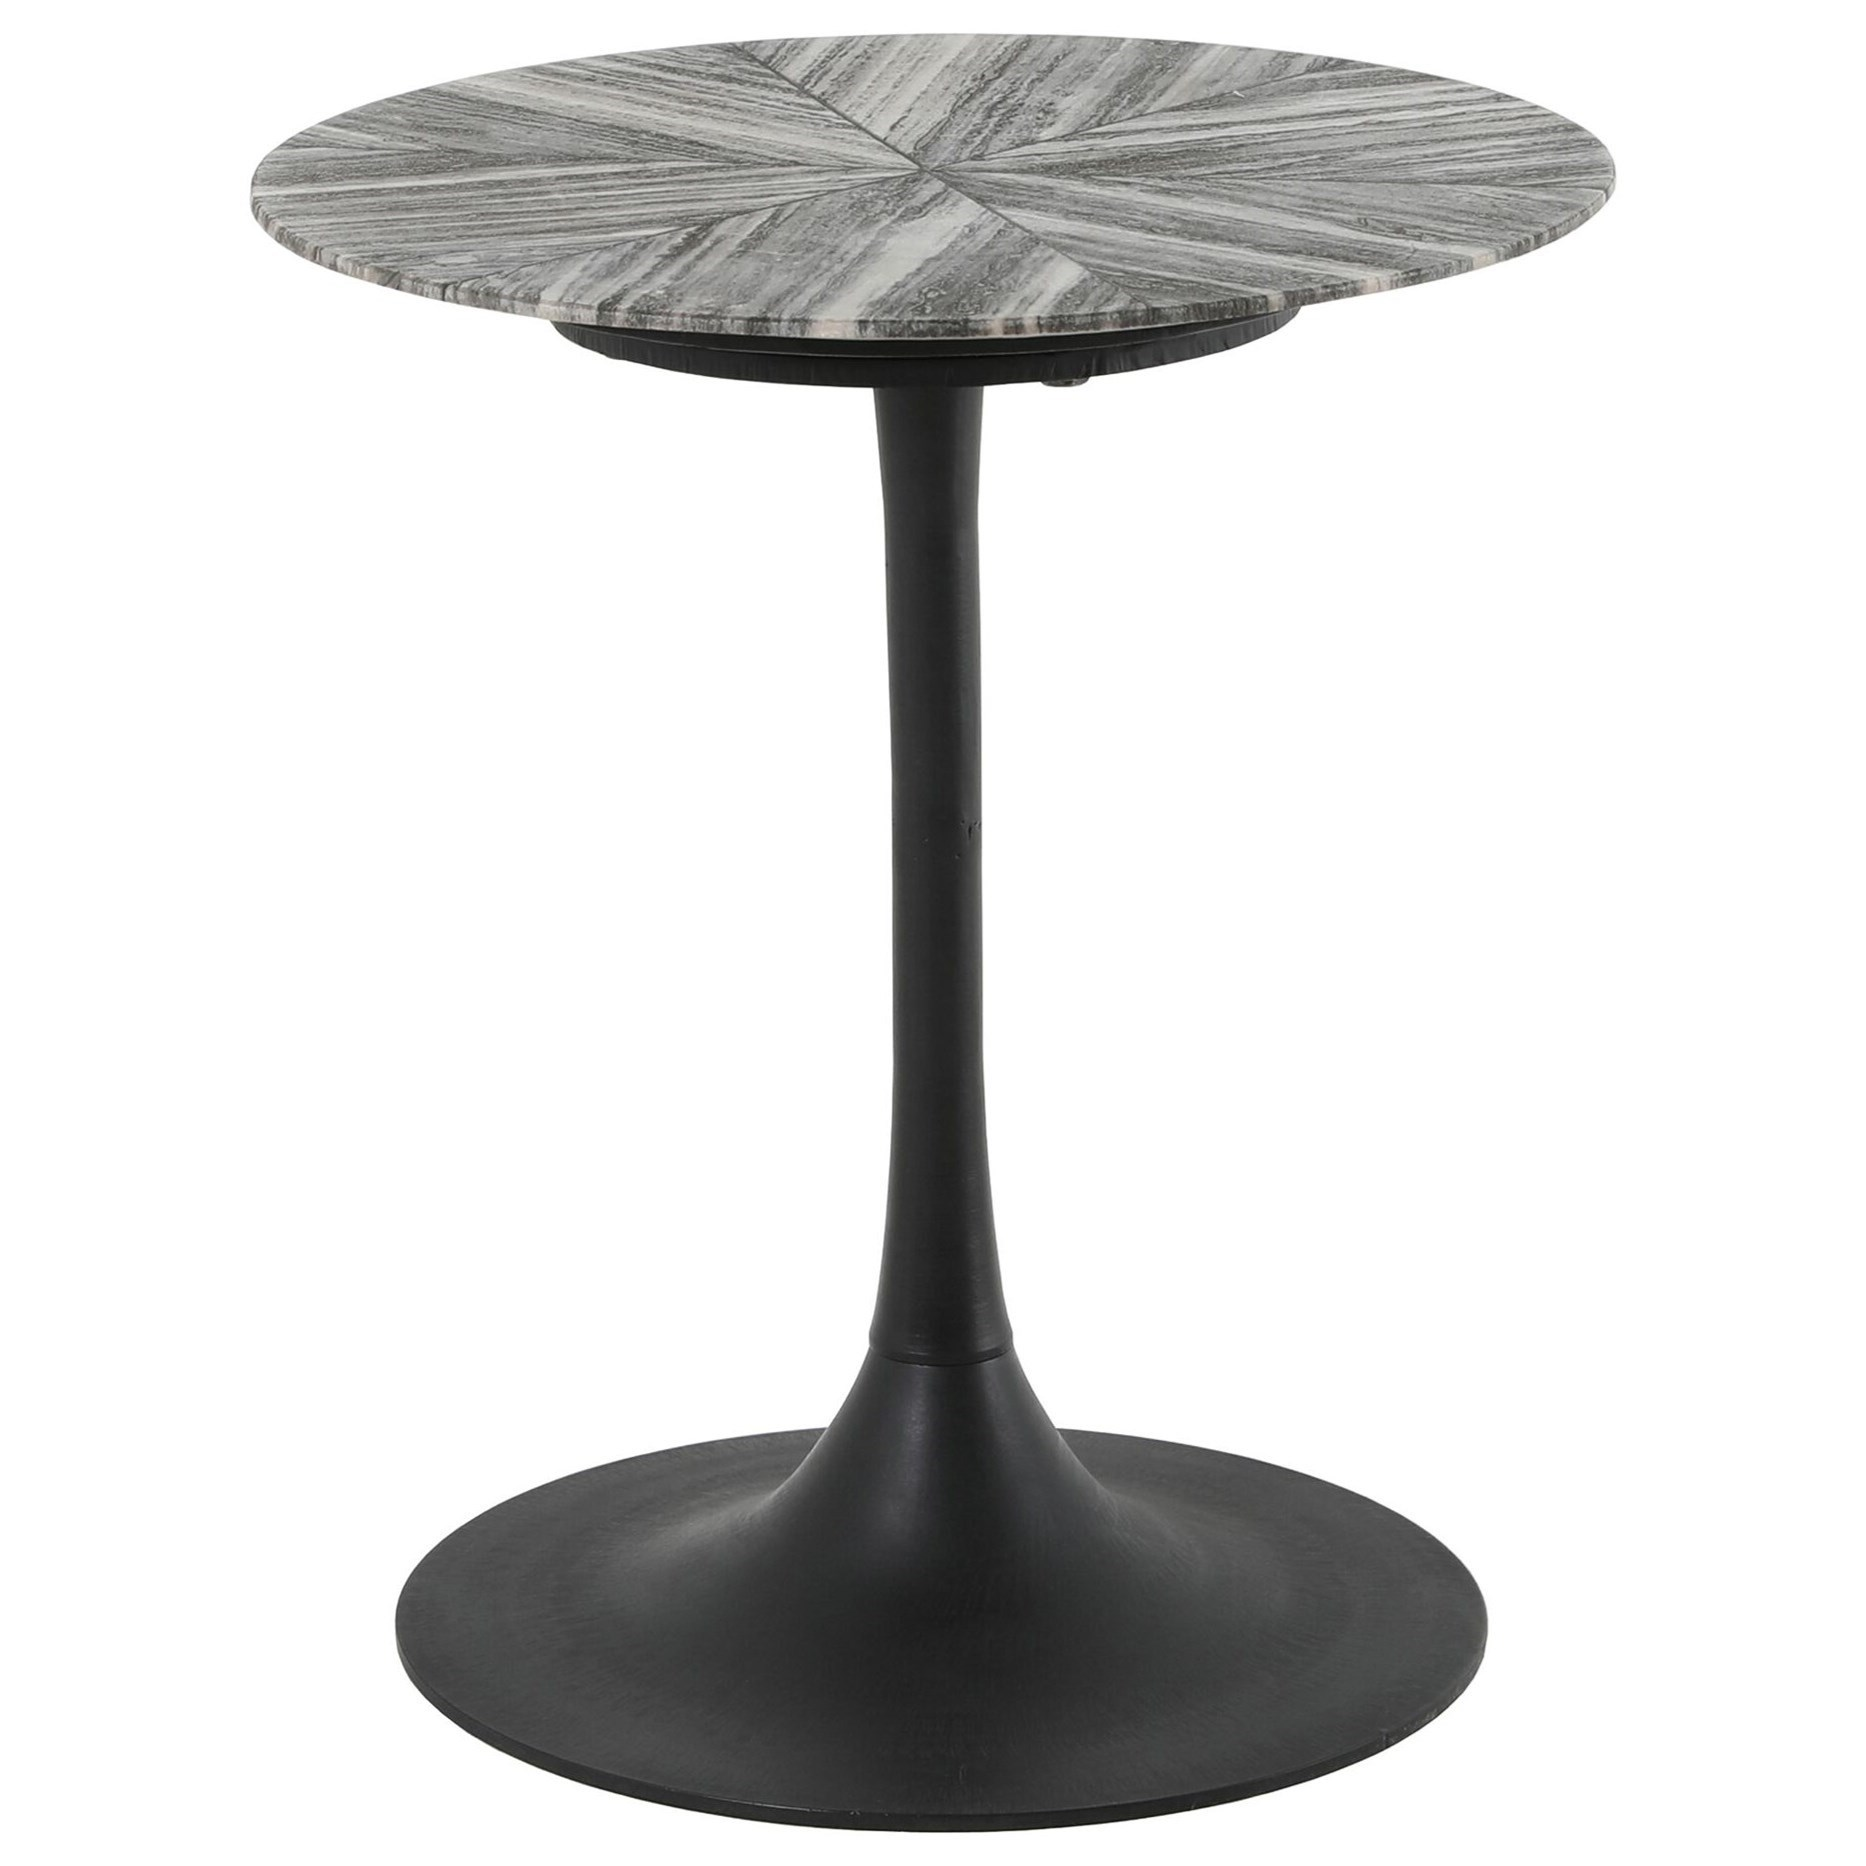 Nyles Marble Accent Table by Moe's Home Collection at Stoney Creek Furniture